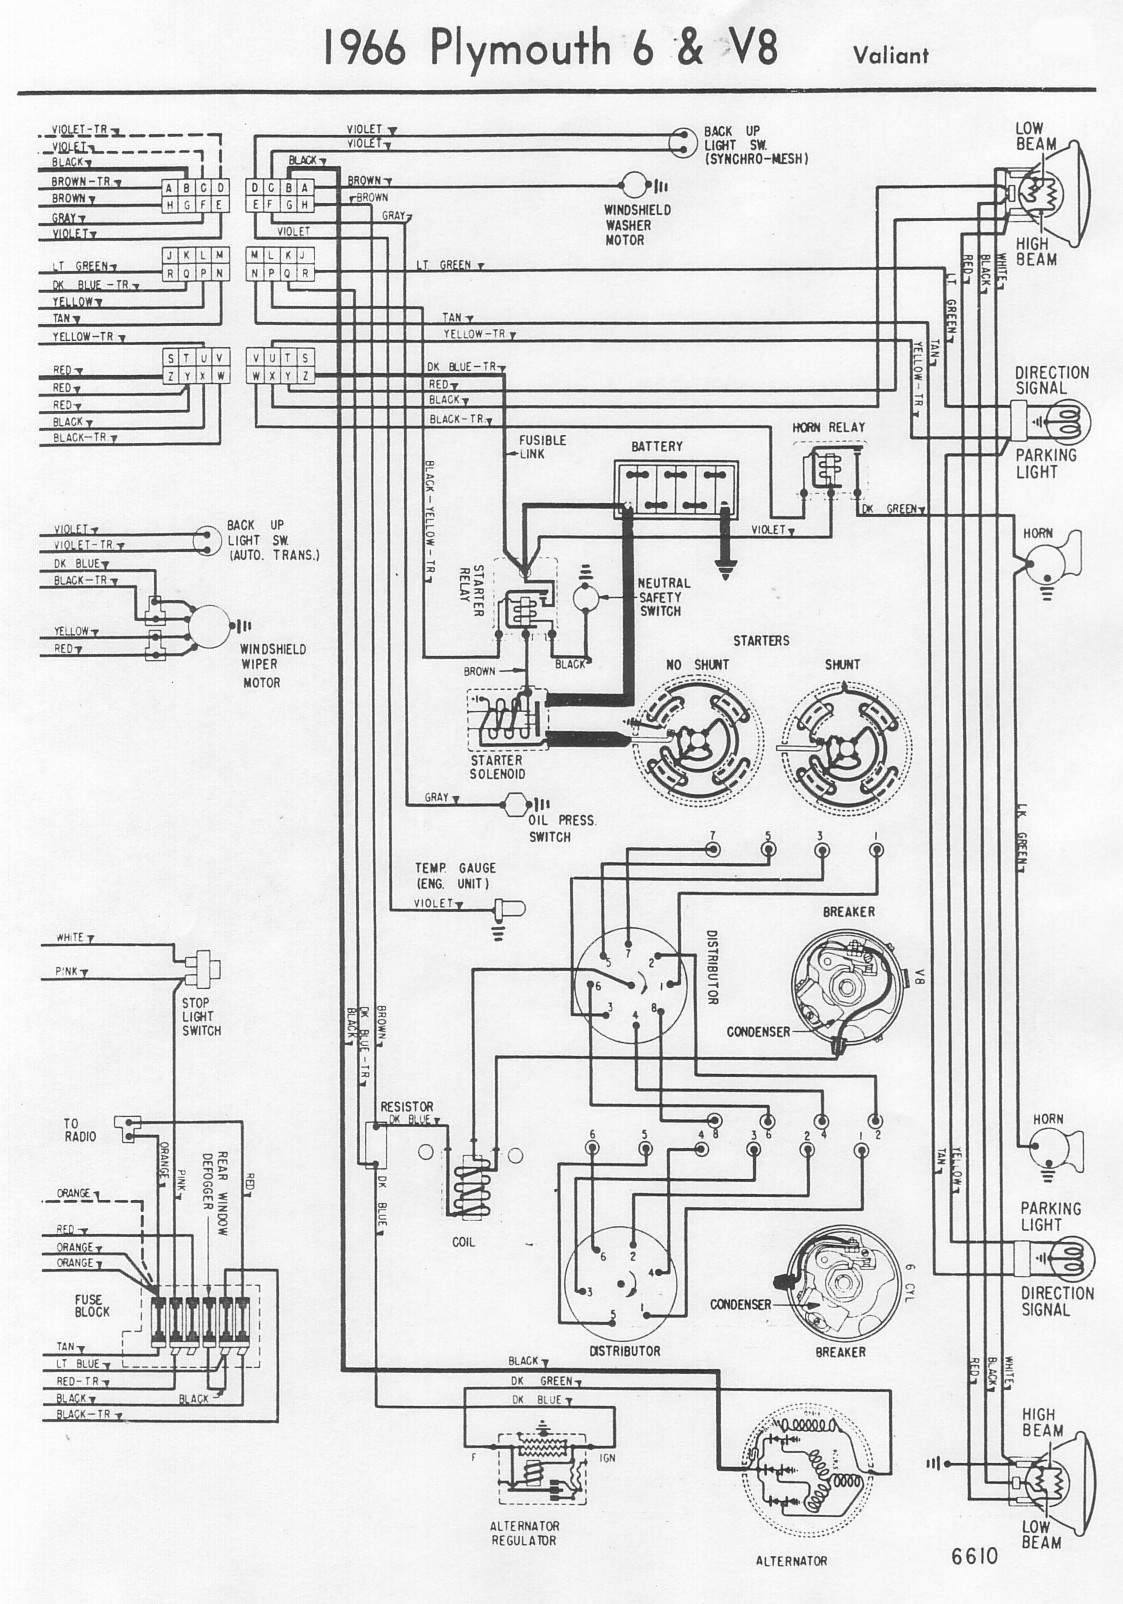 small resolution of plymouth valiant ac wiring data diagram schematic plymouth valiant ac wiring electrical wiring diagram plymouth valiant